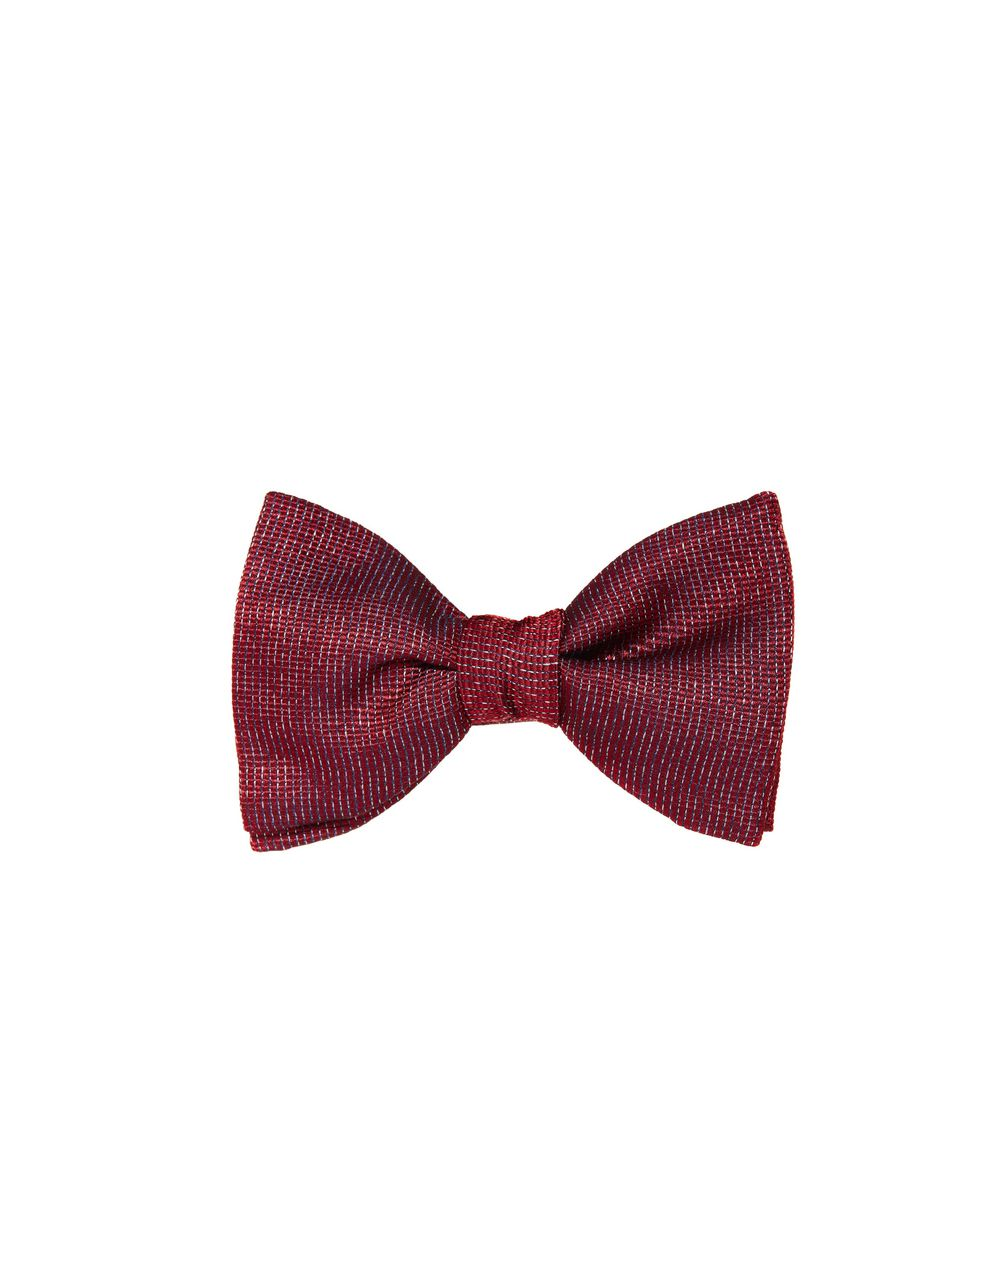 """NEW FANCY"" RED BOW TIE - Lanvin"